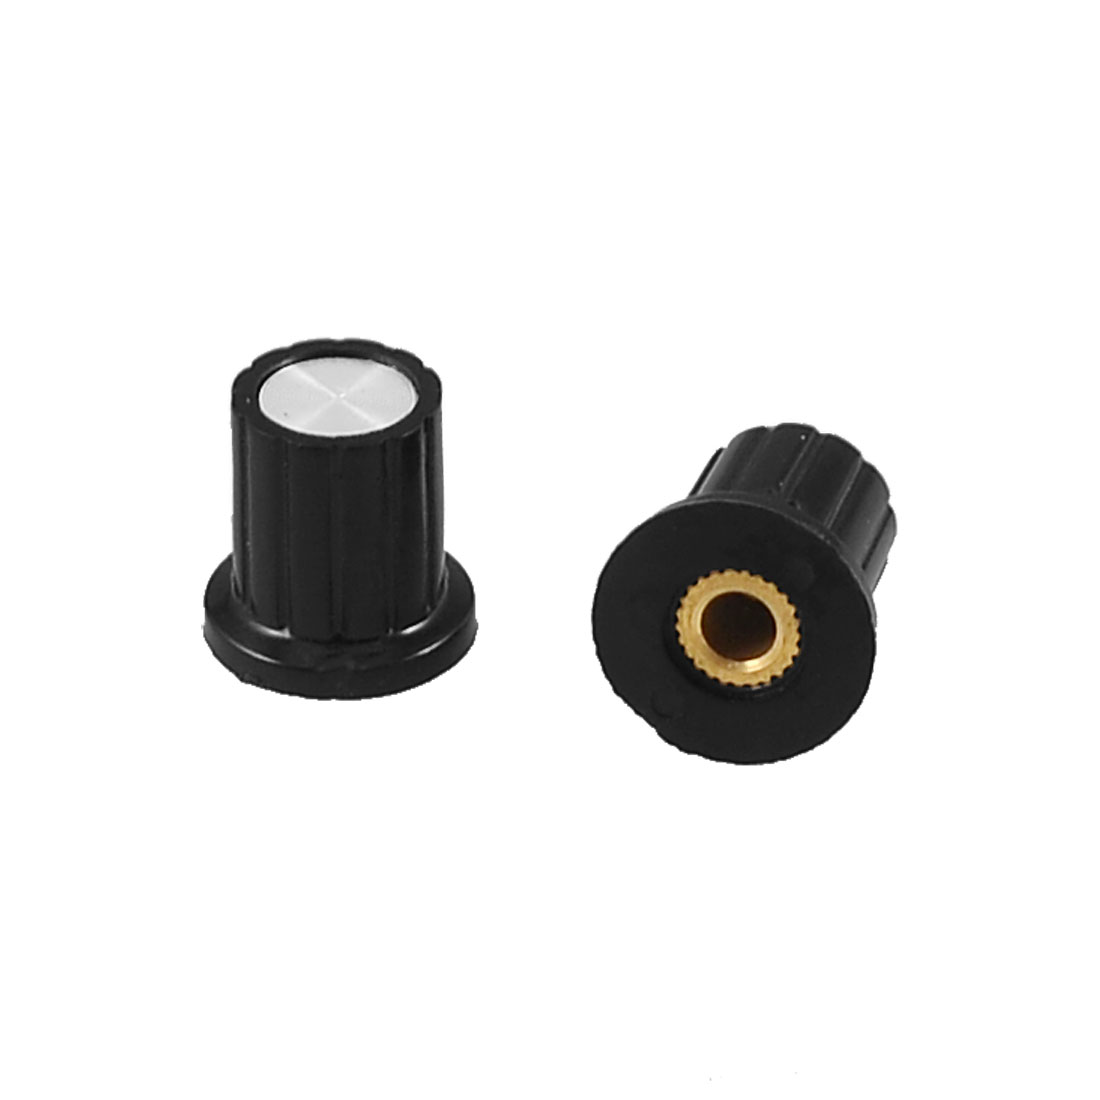 2 Pcs Plastic Potentiometer Control Knob Grip Cap Black 4mm